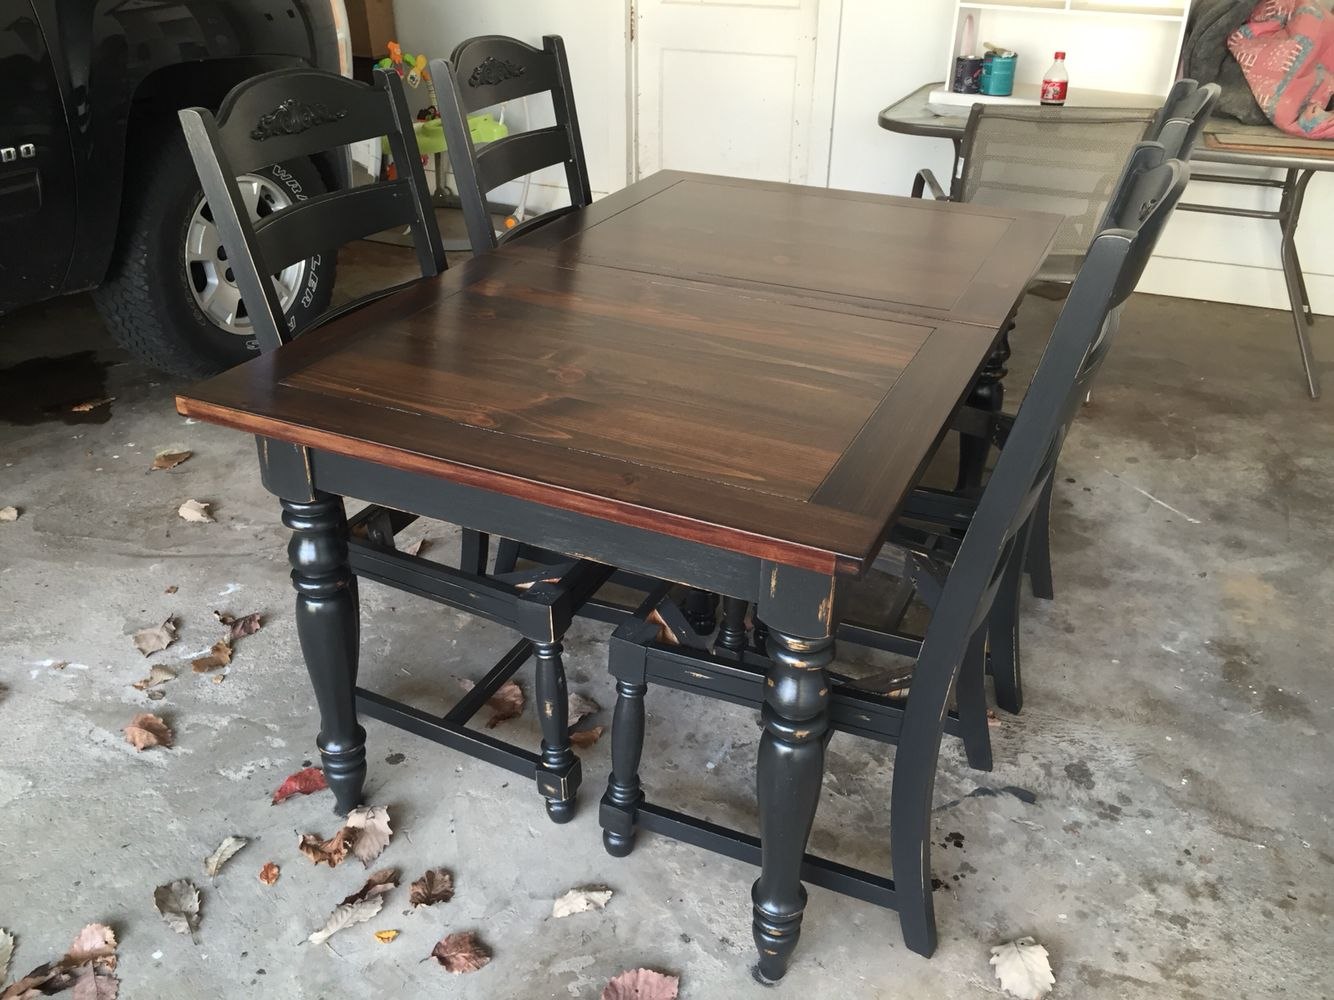 redo kitchen table Refinished oak table base and chairs chalk painted Black Velvet and sealed with polycrylic